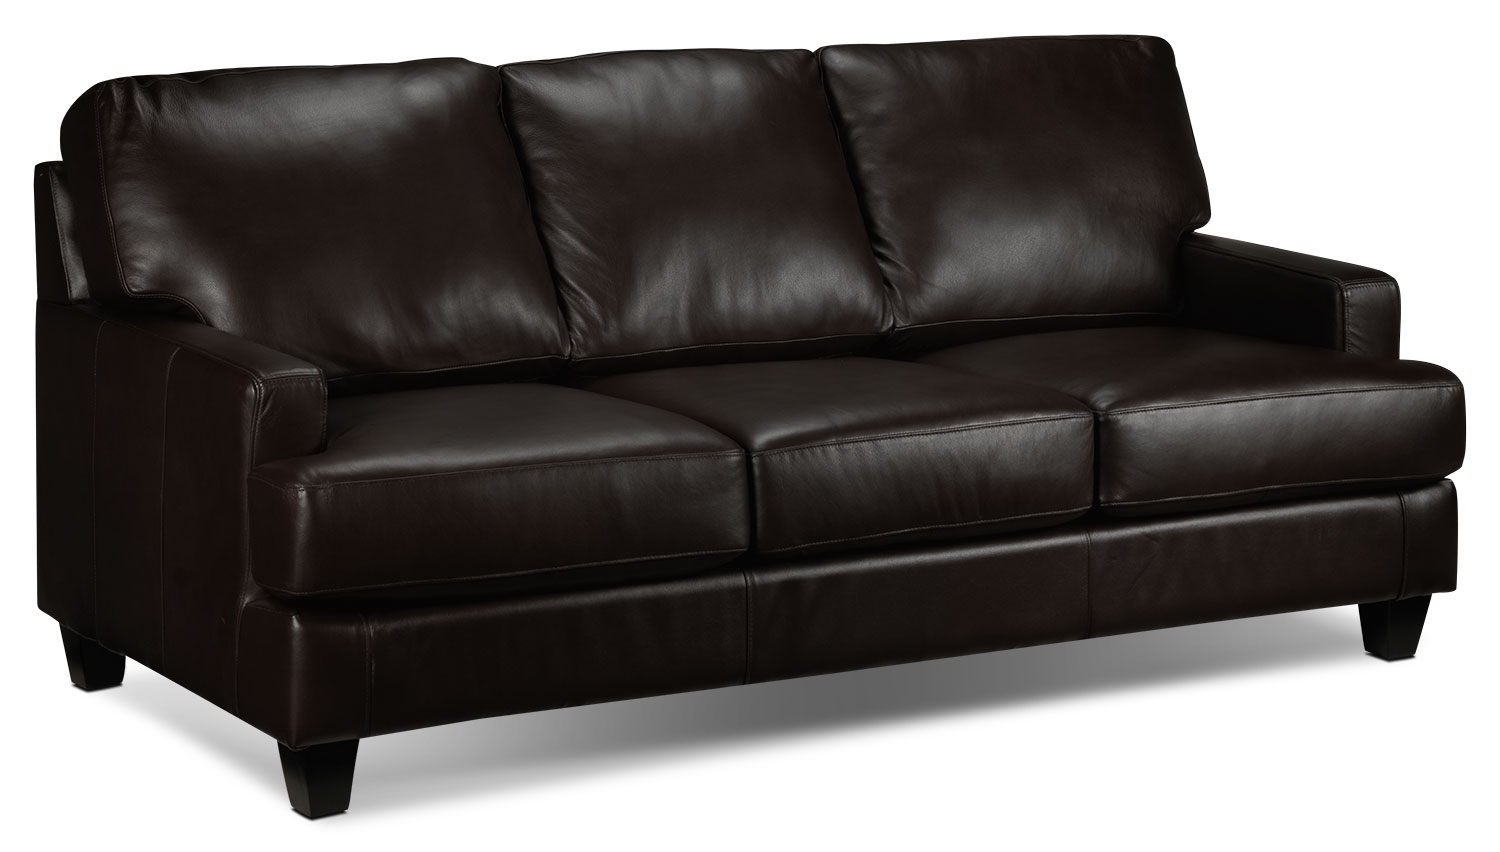 Janie Sofa - Coffee